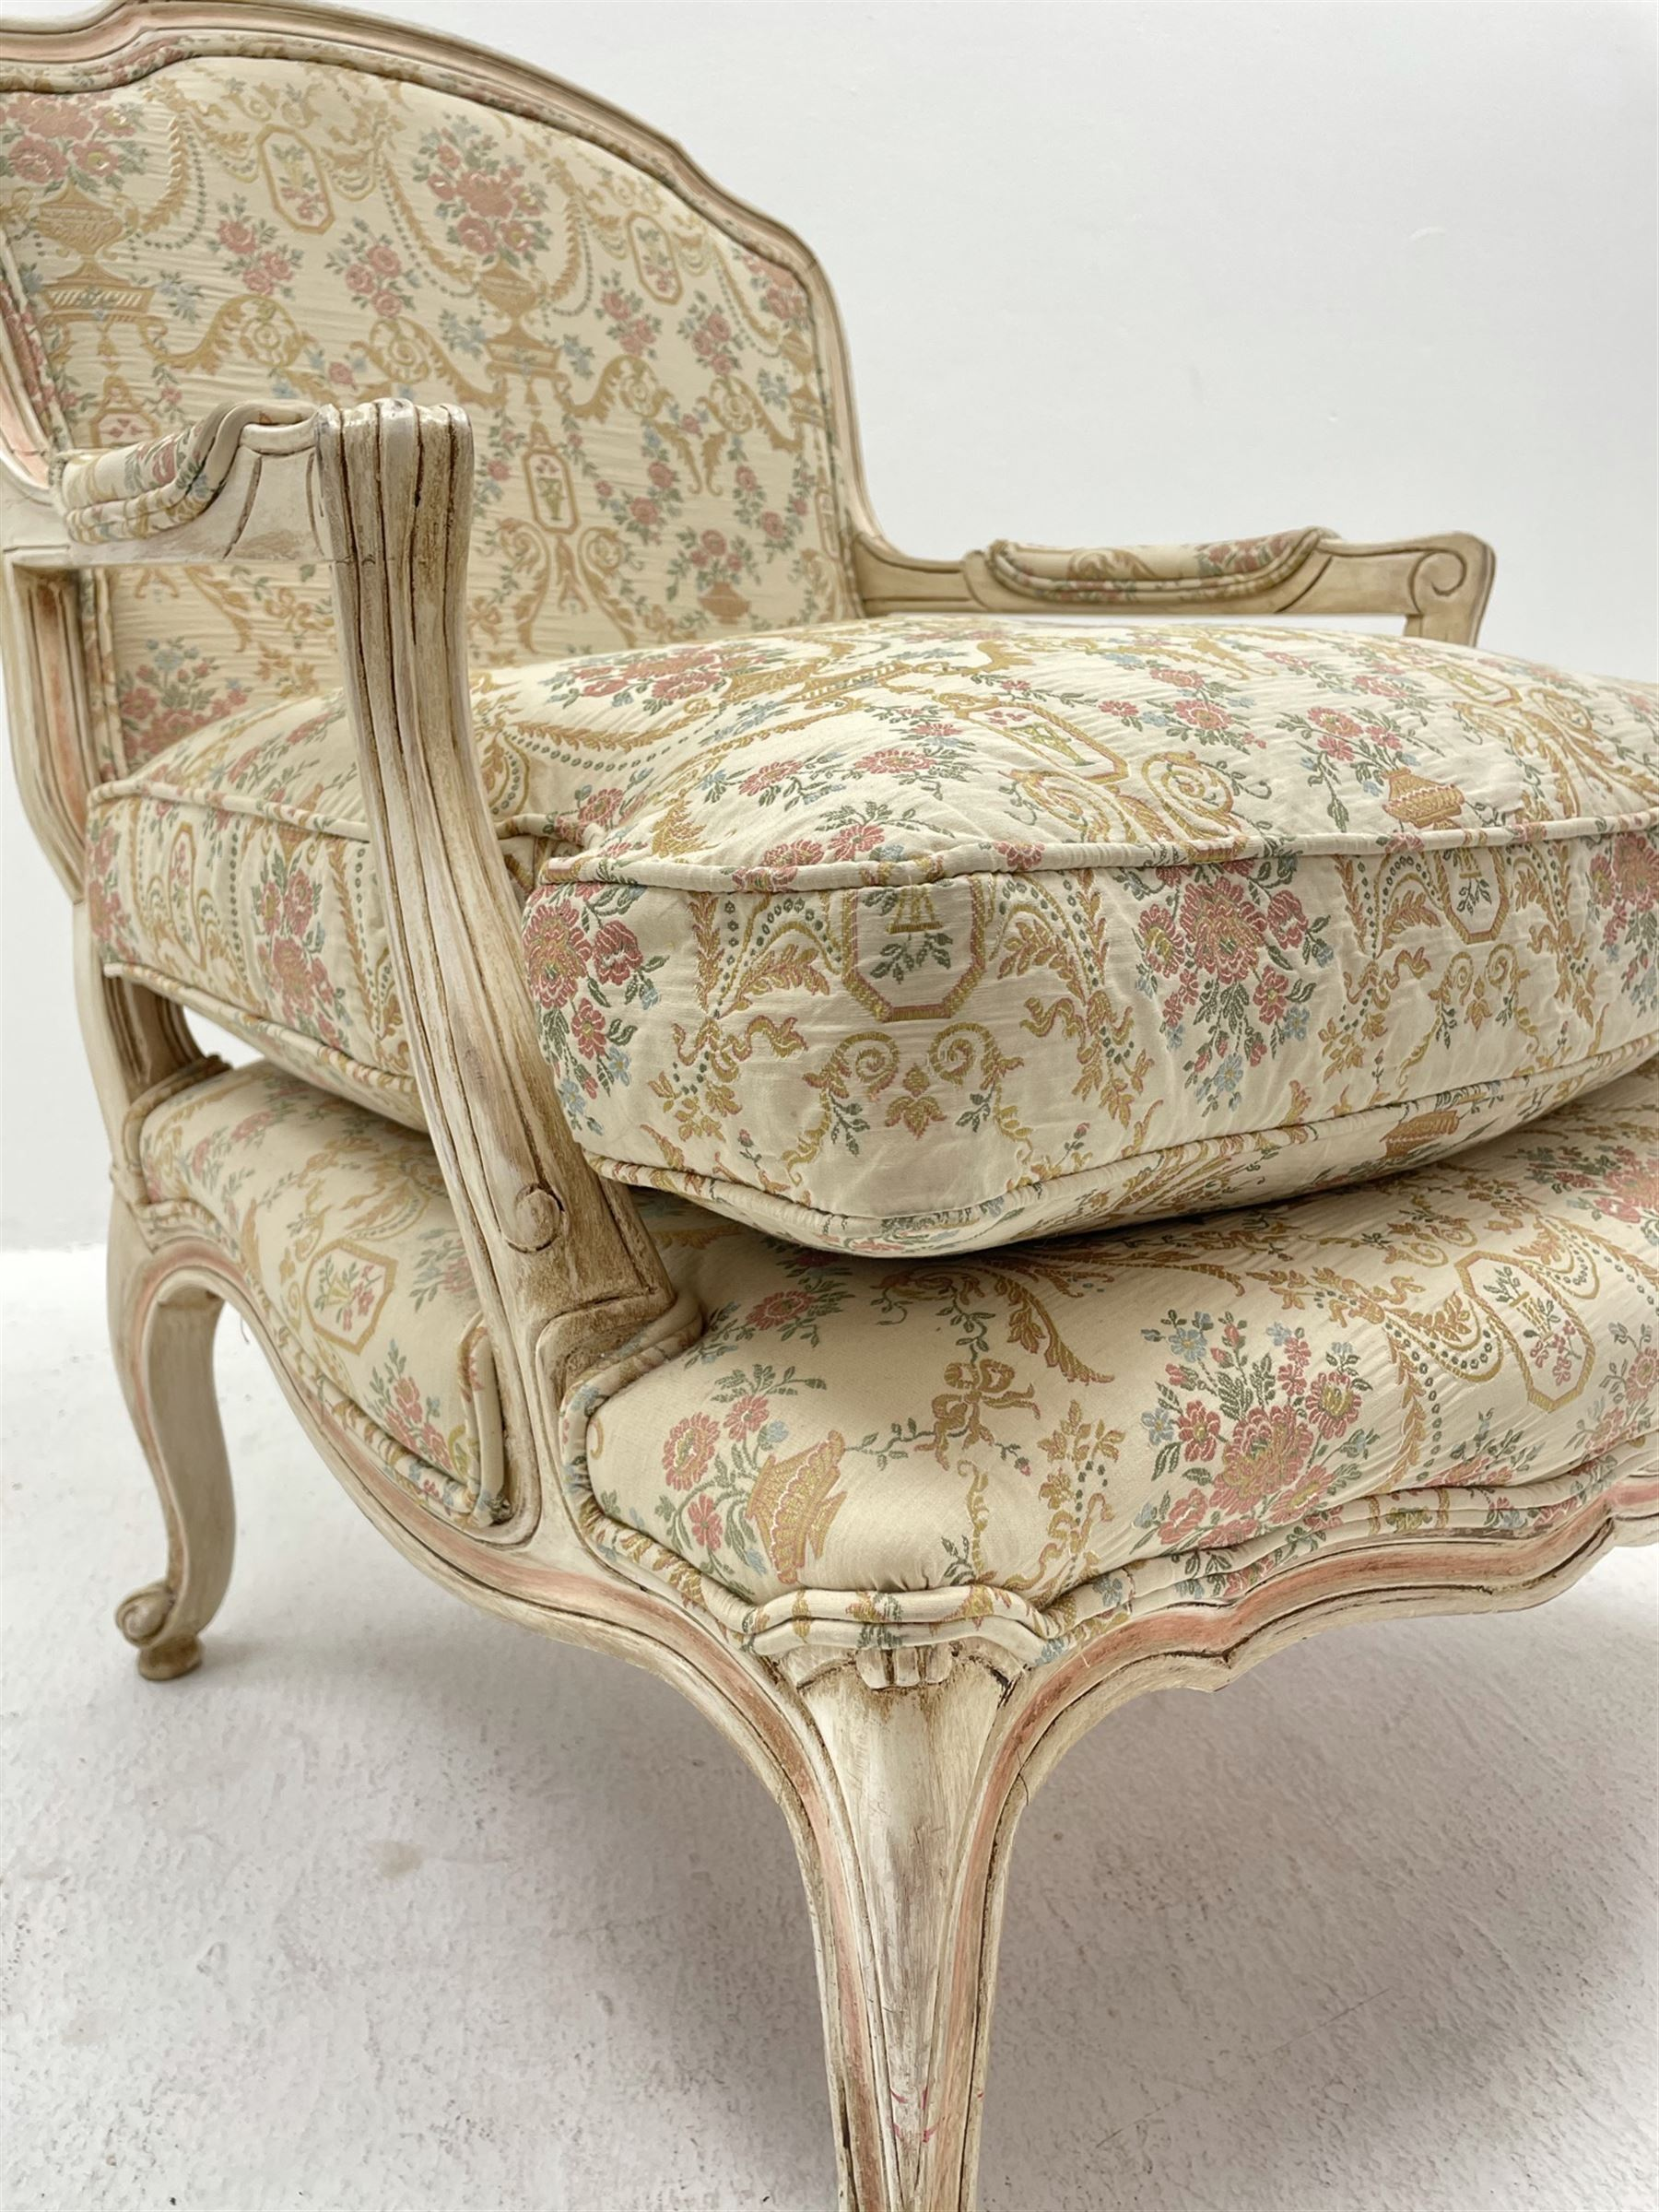 French style armchair - Image 5 of 6